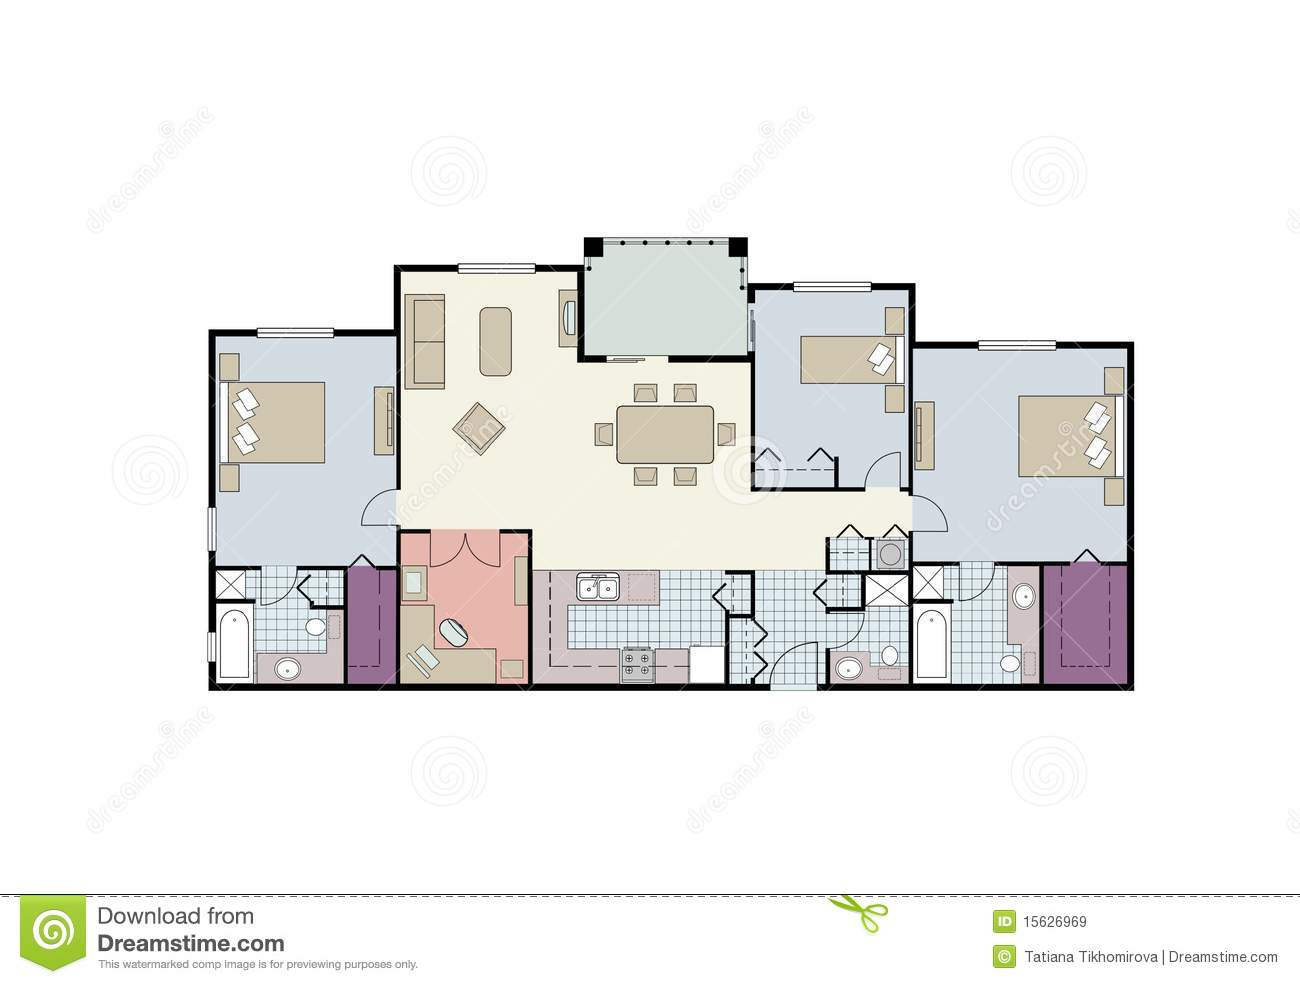 Floor plan of three bedroom condo with furniture royalty for Condo blueprints